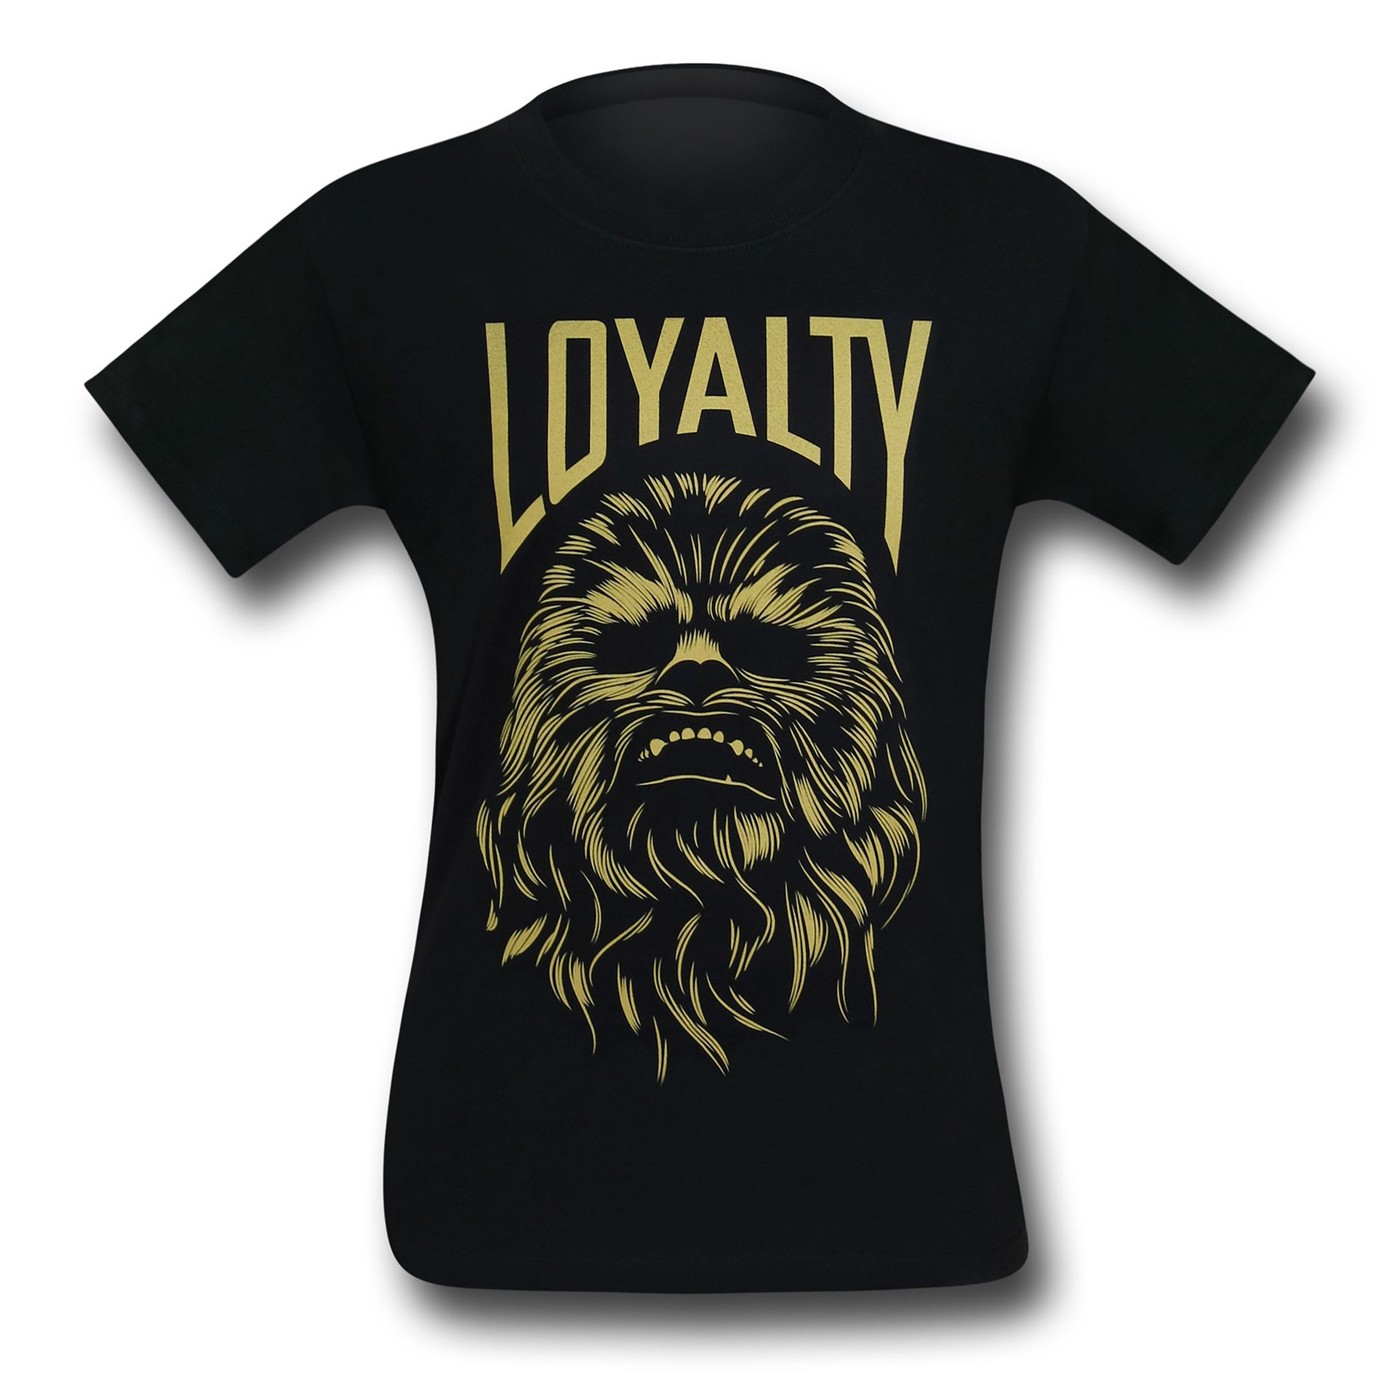 Star Wars Chewbacca Loyalty Men's T-Shirt